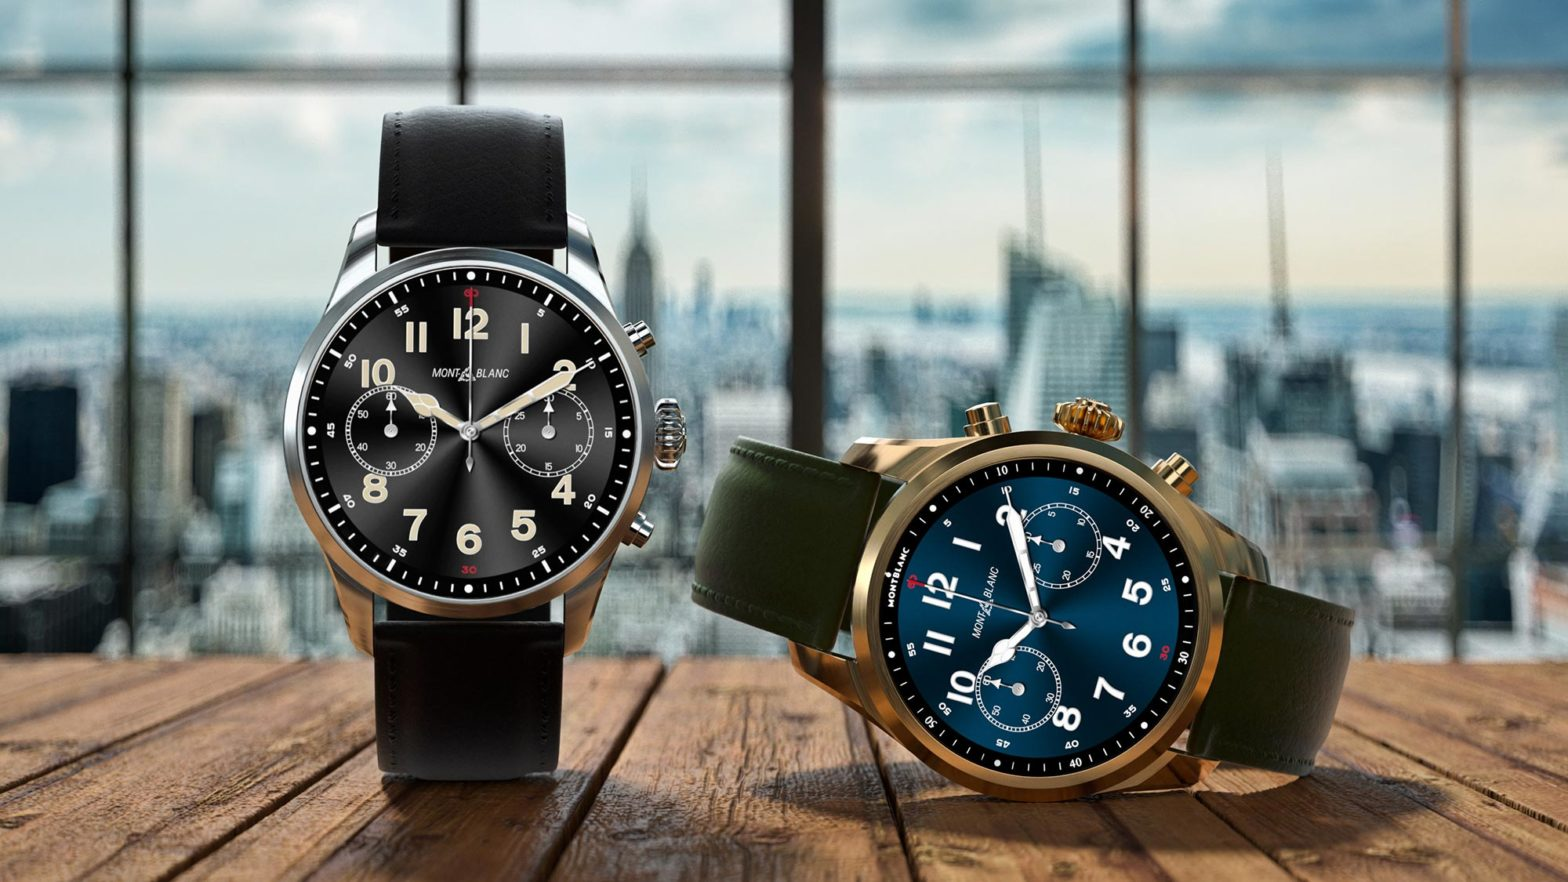 Montblanc Summit 2 Plus Smartwatch